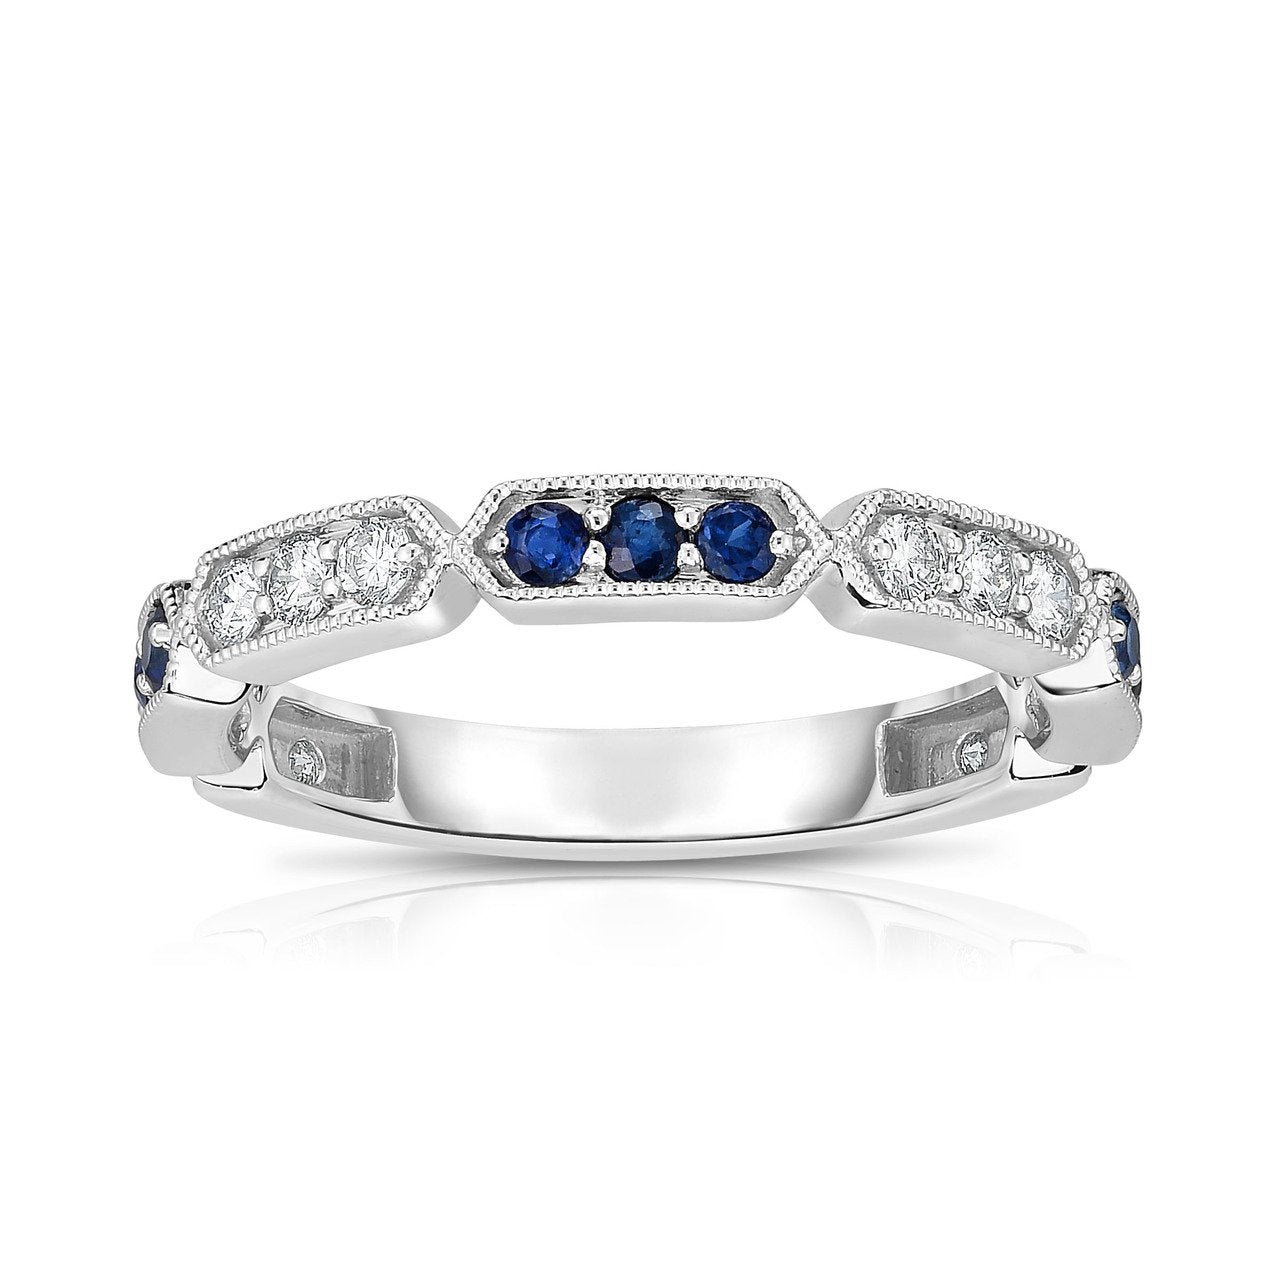 Sabel Collection 14K White Gold Sapphire and Diamond Milgrain Accent Ring